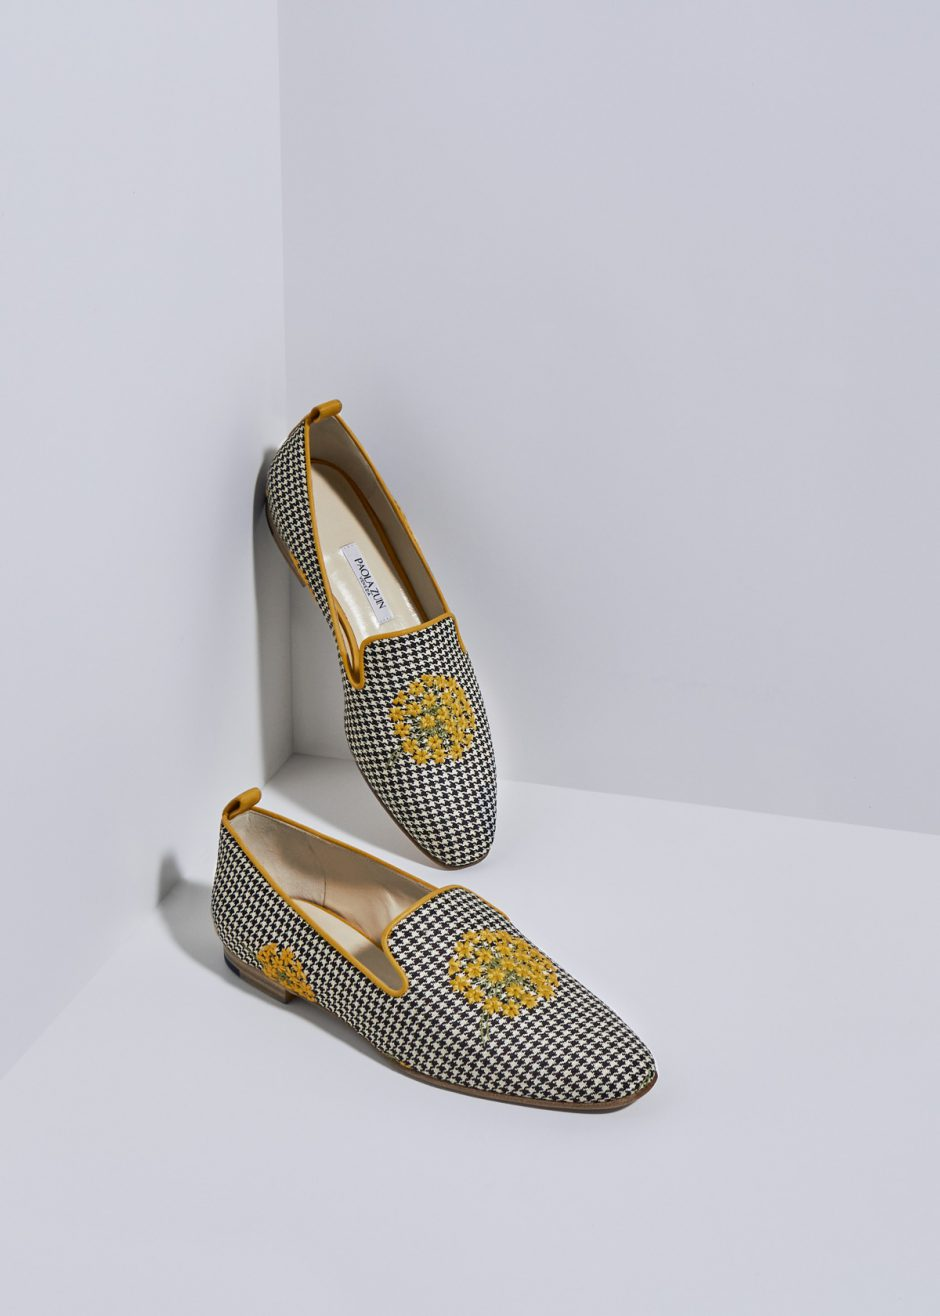 Sveva – Ballet flat b/w houndstooth with yellow flower